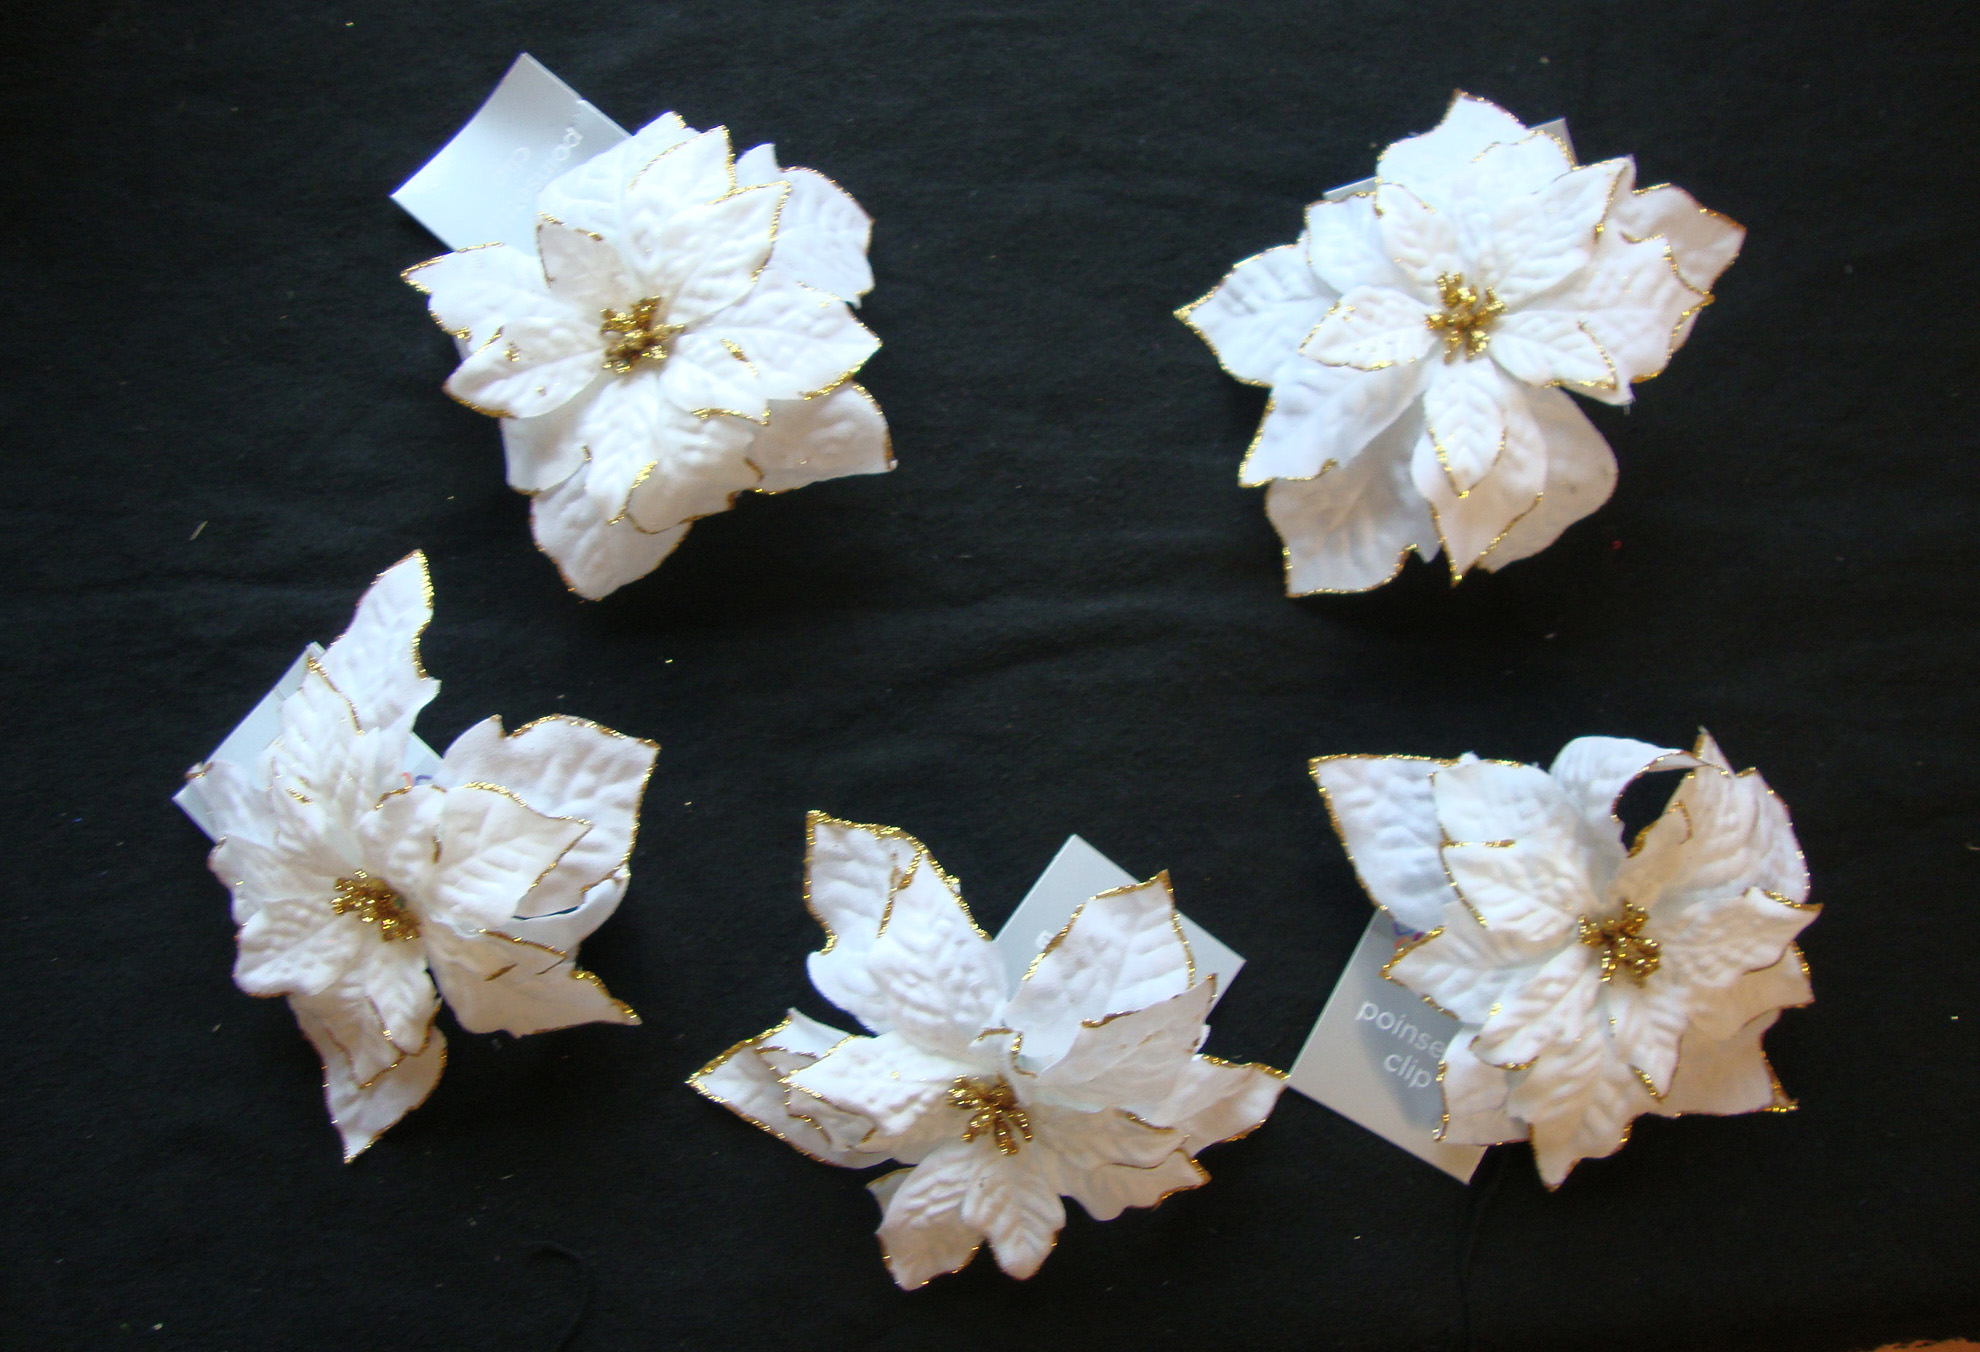 5 x winter white clip on poinsettia christmas tree decorations christmas picks - Poinsettia Christmas Tree Decorations